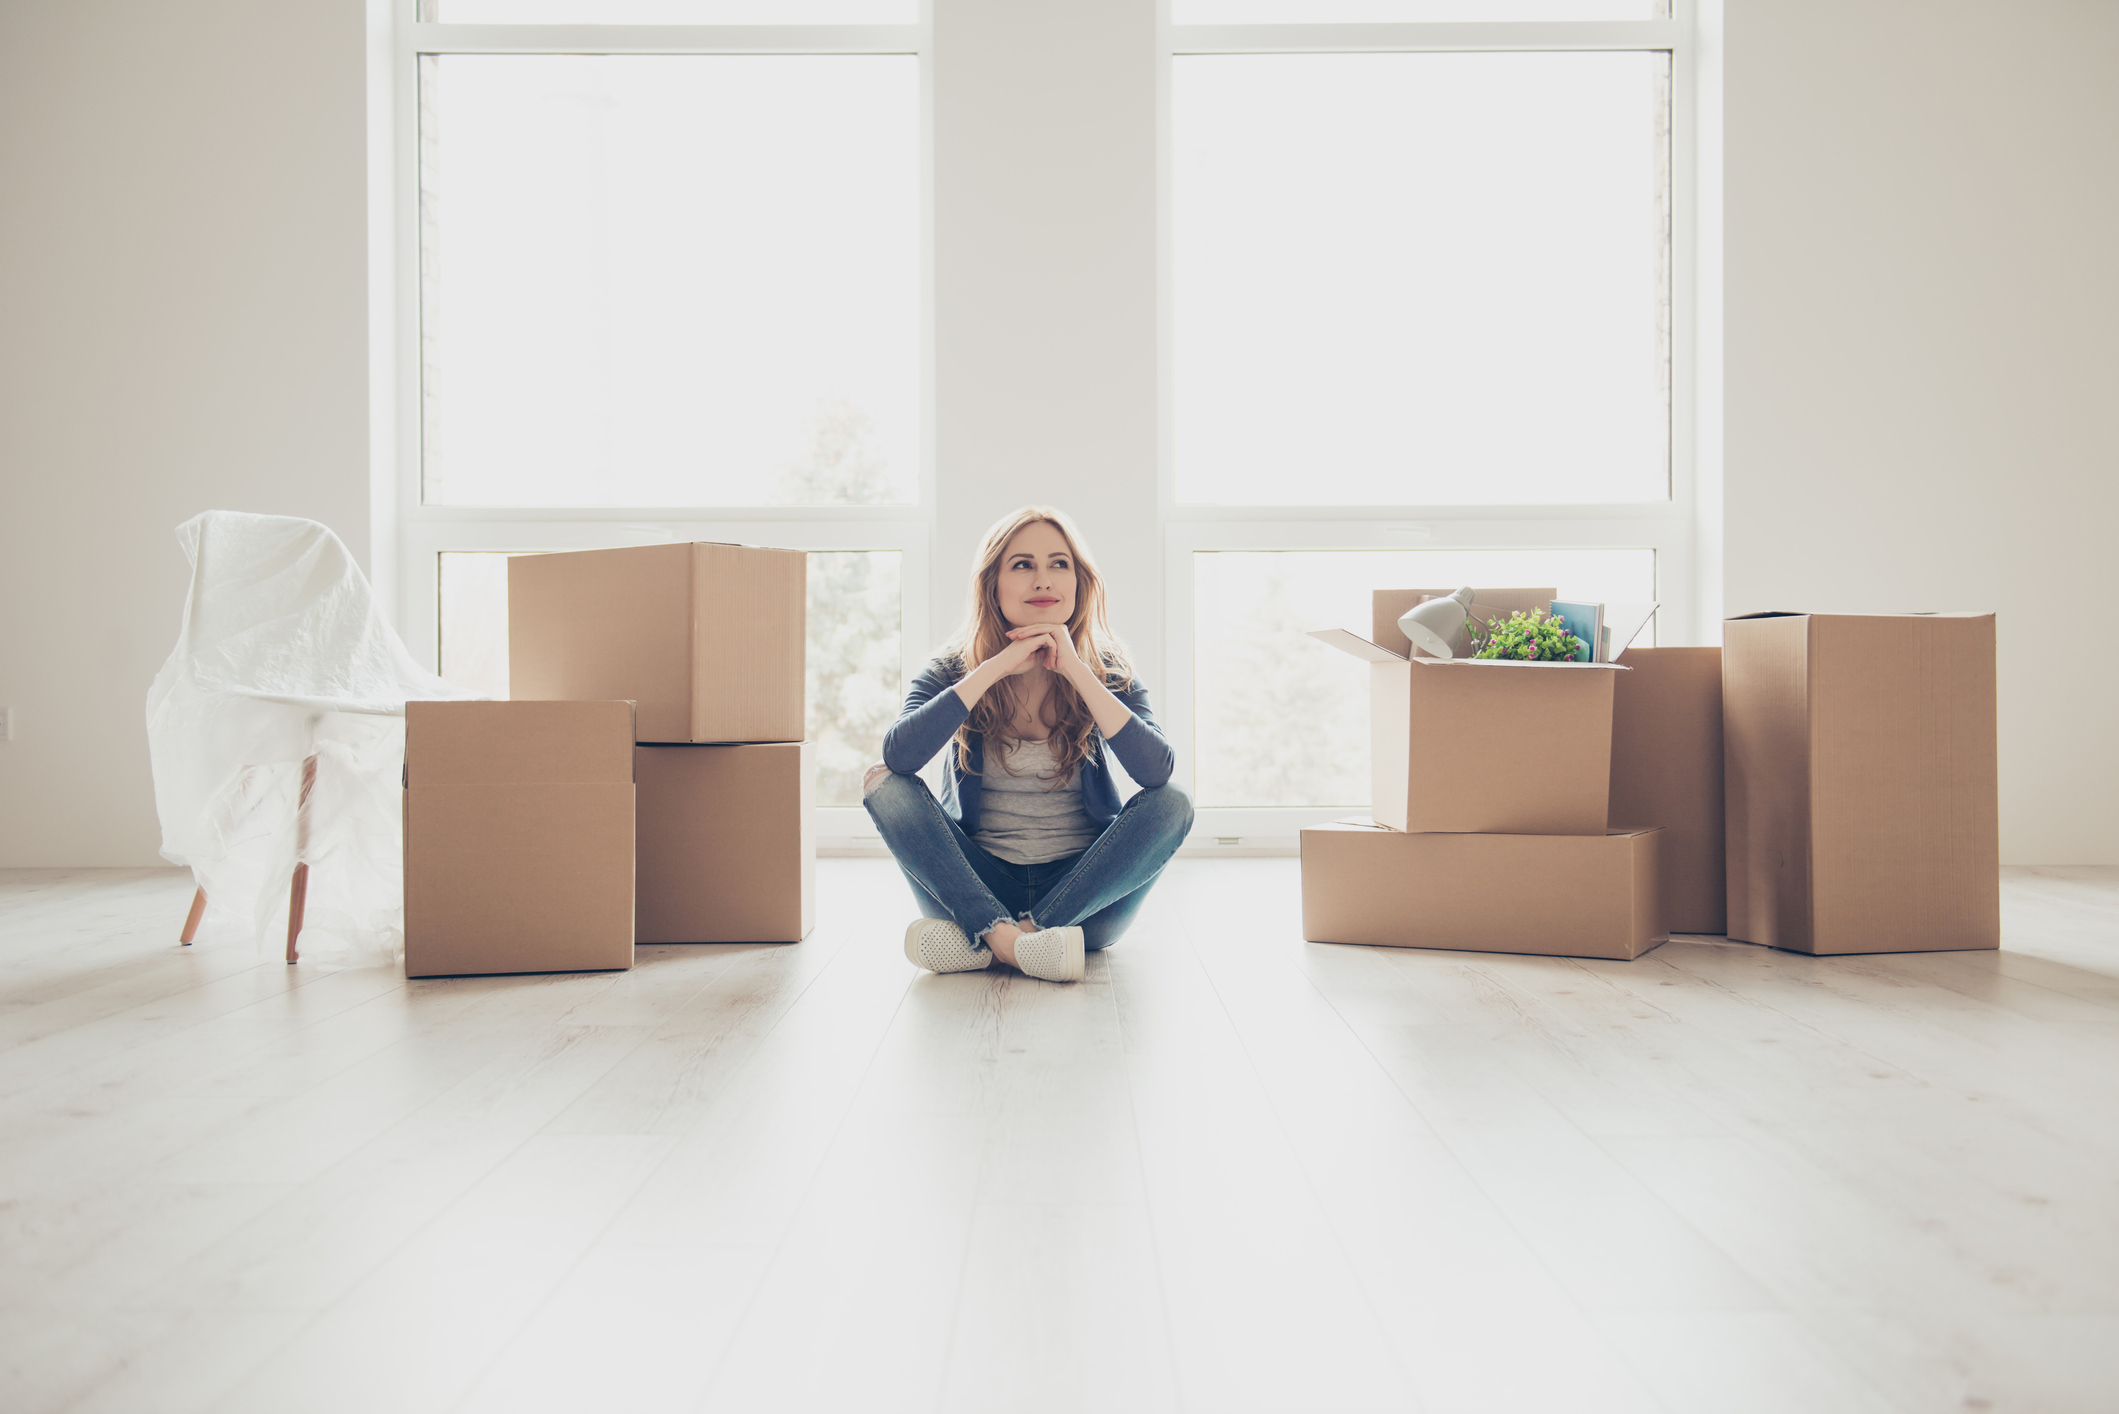 women sitting next to boxes moving